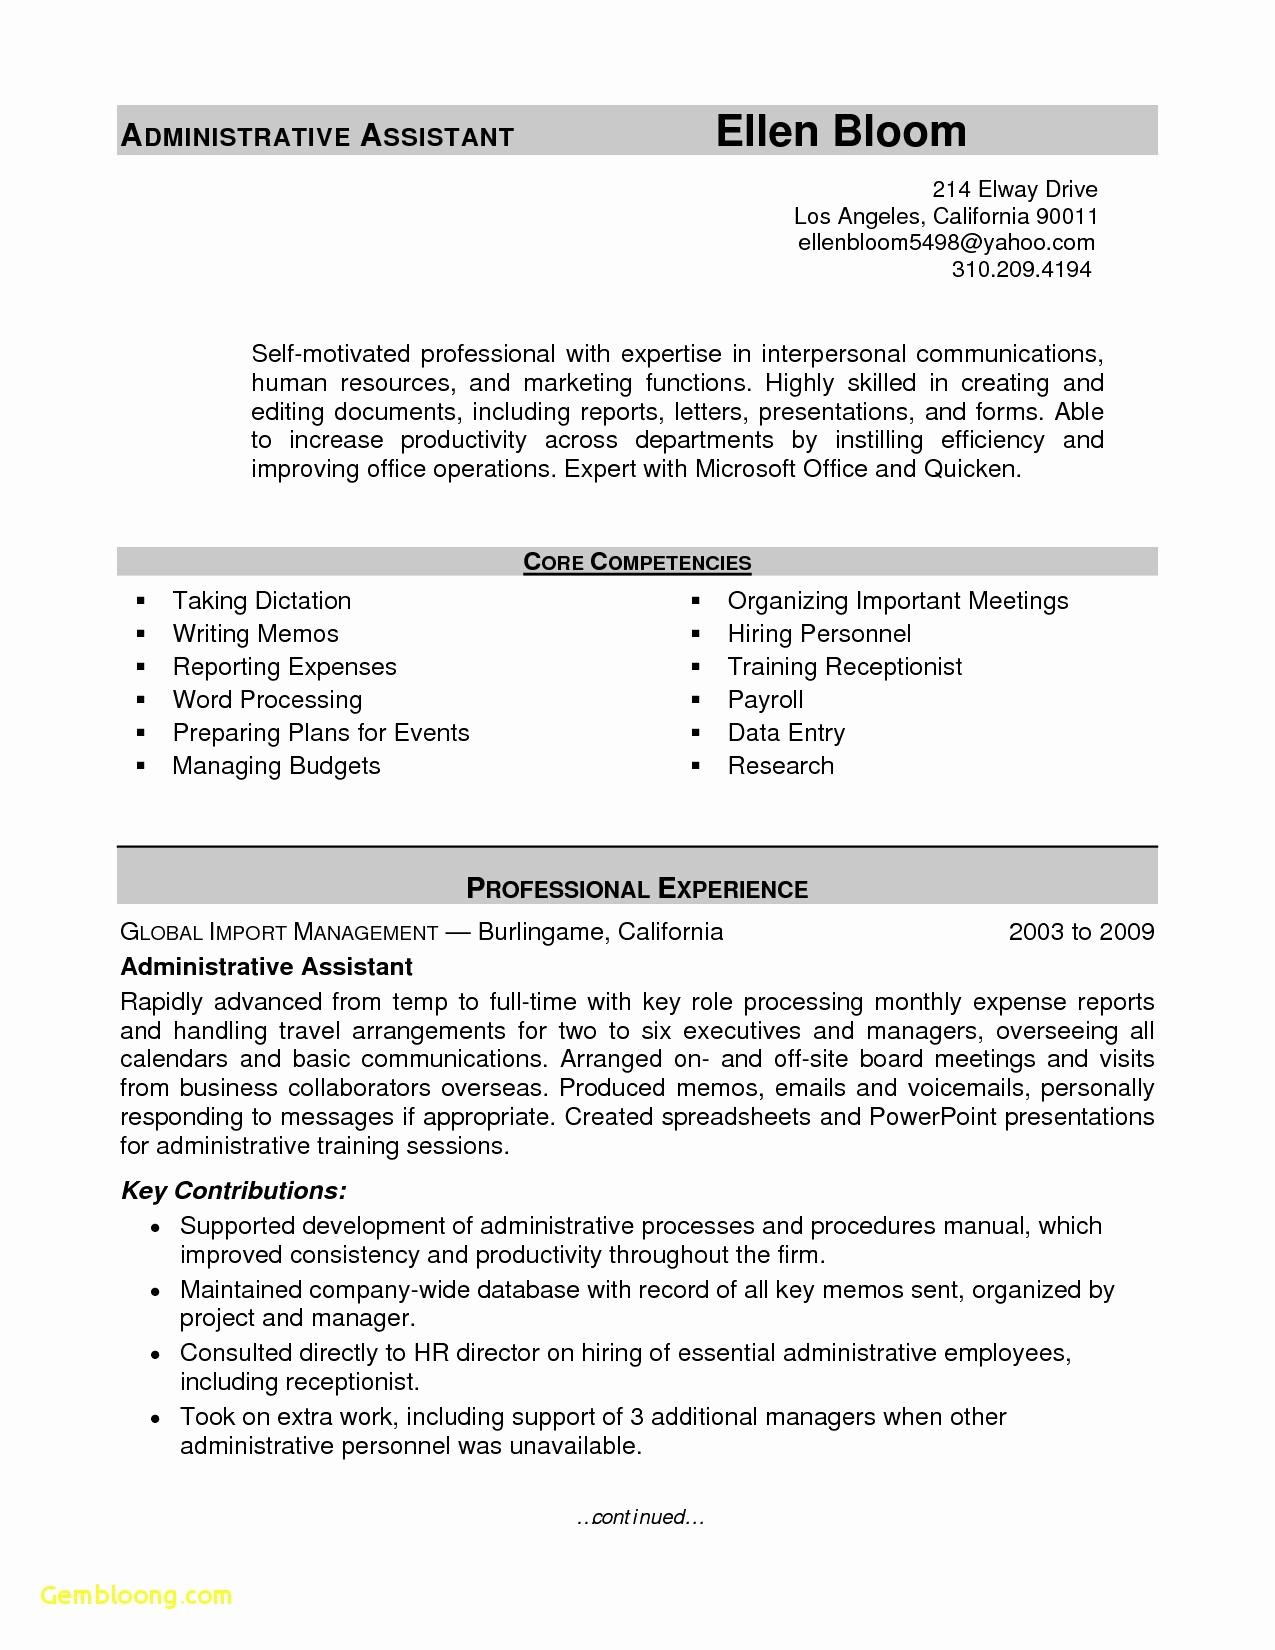 Office Manager Resume Template Free - Resume Sample for Hr Manager Elegant Hr Manager Resume New American